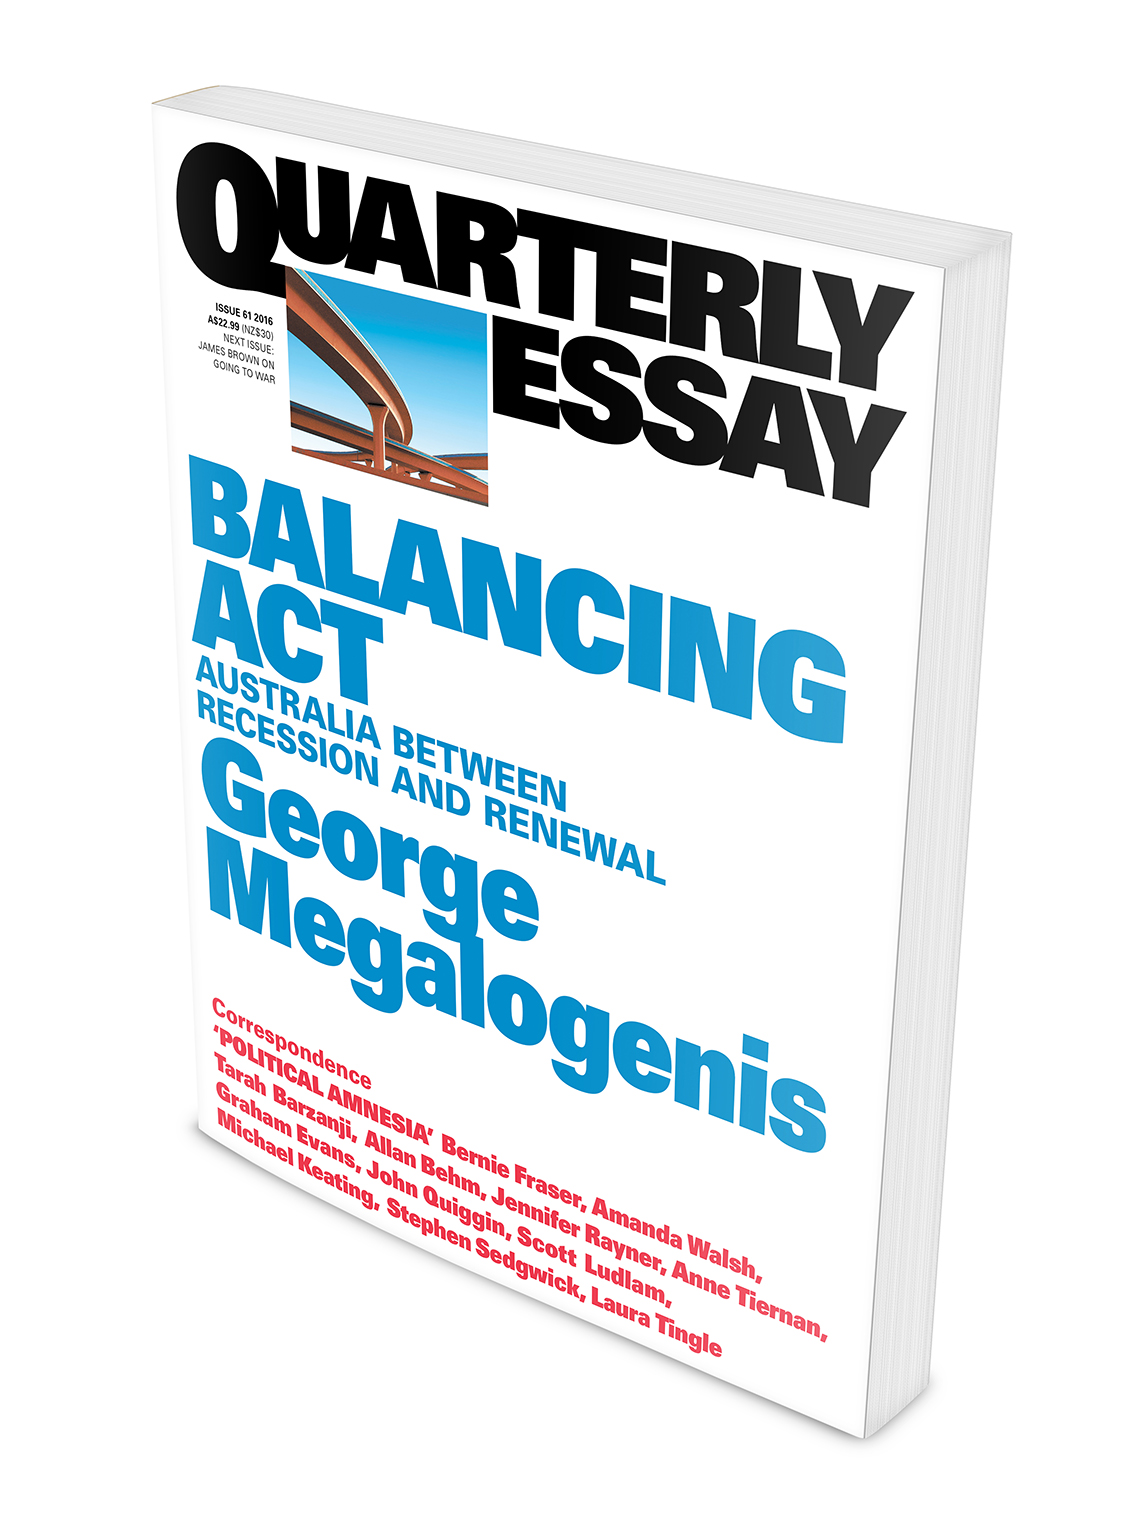 george megalogenis quarterly essay Buy quarterly essay 40 trivial pursuit from dymocks online bookstore find latest reader reviews and much more at dymocks.